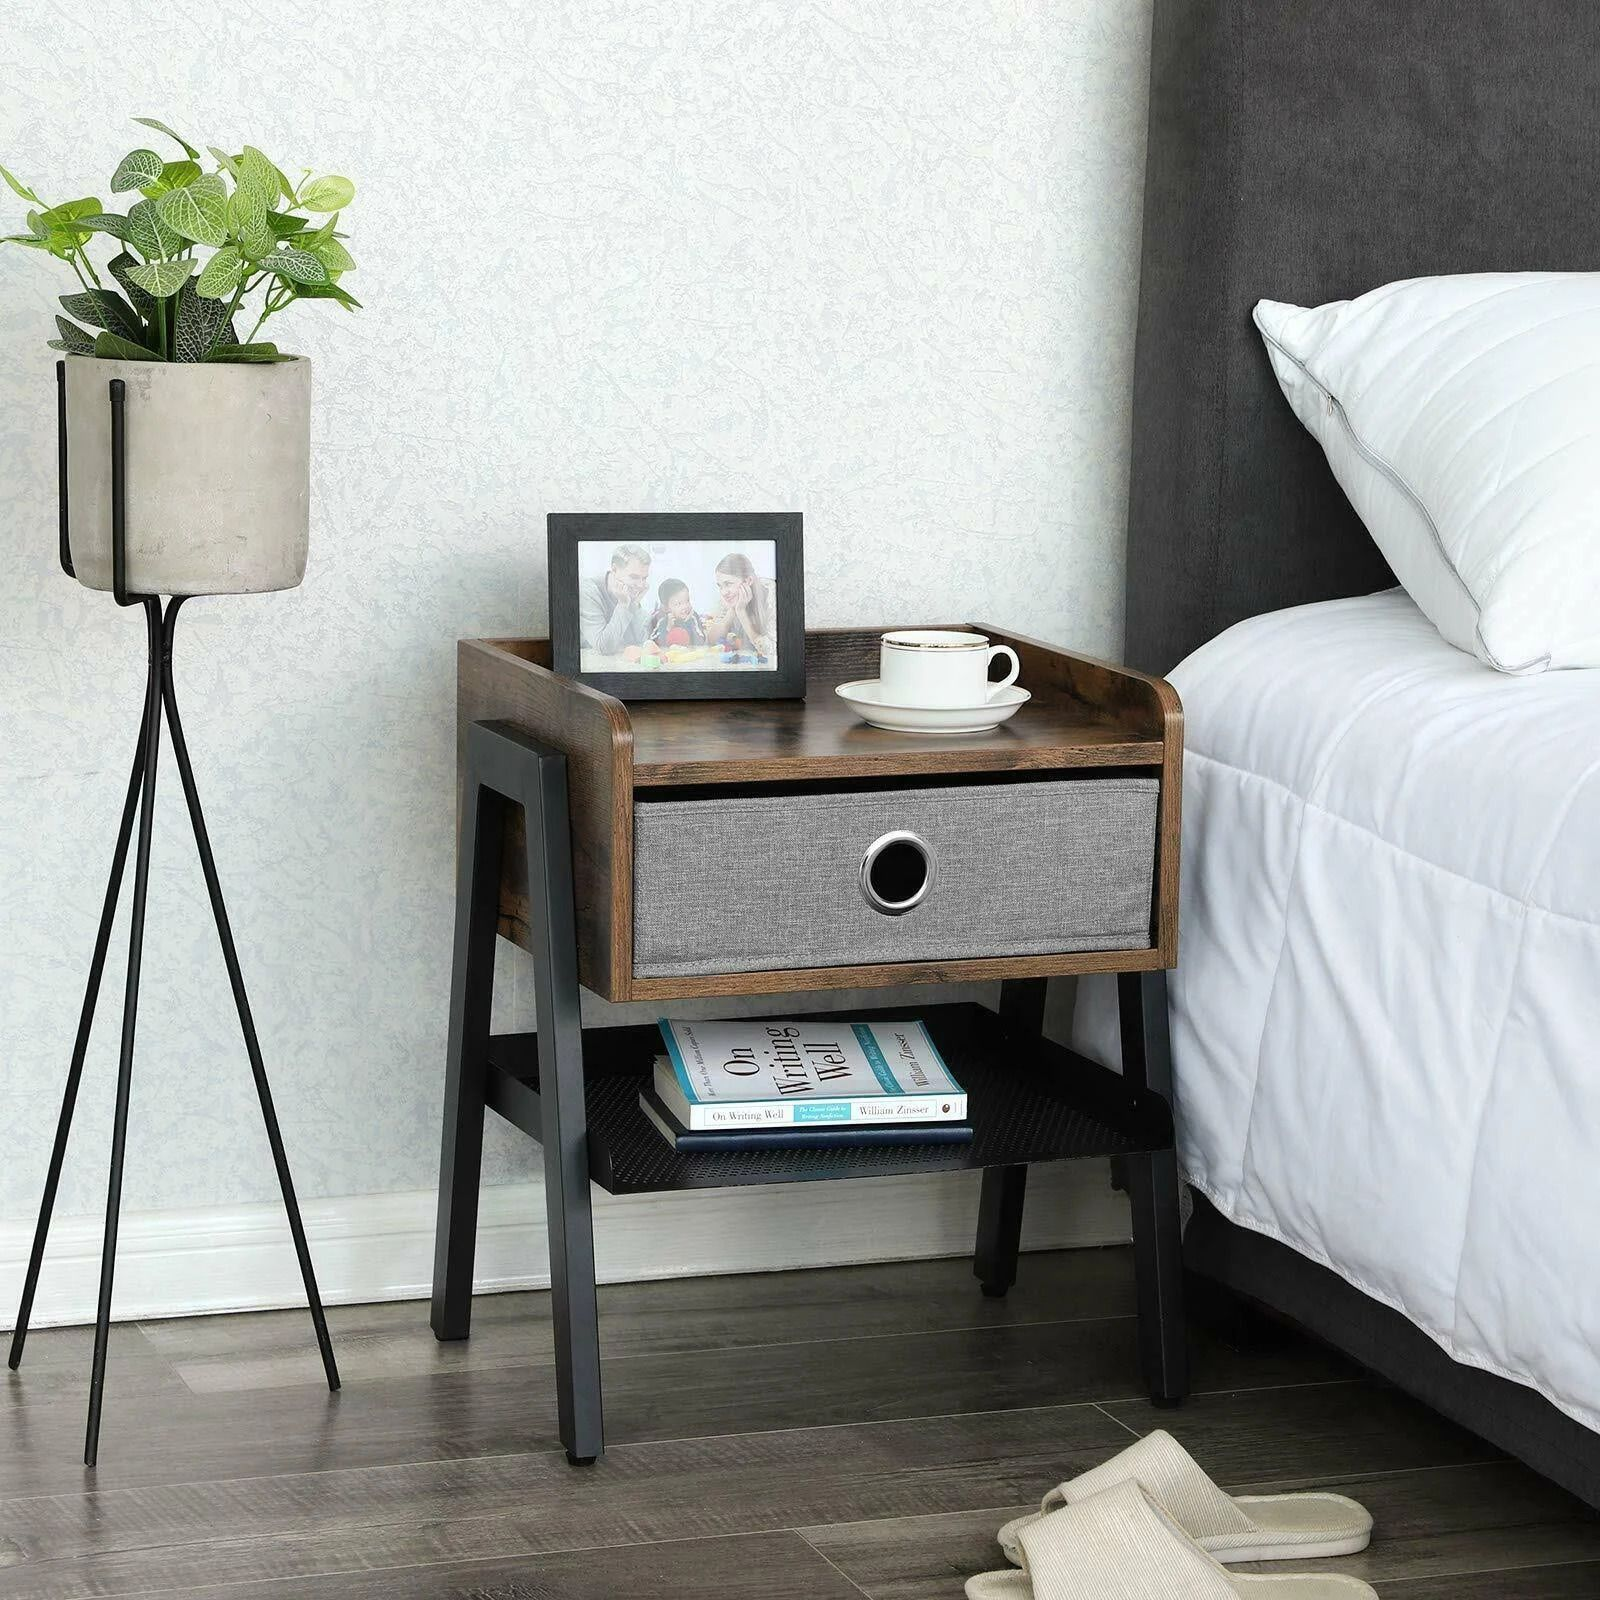 Stylish, rustic and spacious, what more can you ask from your nightstand.  Follow Us 👇 #benzara . . . #furniture #nightstand #Modernnightstand #woodentable #industrialdecor #industrialdesign #industrialhomedecor #neutraldecor #industrialinterior #styleithappy #simplystyleyourspace #homewithrue #decorcrushing #interior4you1 #modernfarmhouse #myroom #interiorboom #decordailydose #farmhousehappy #showmeyourstyled #myhomesense #dailydecordetail #bohointerior #oneroomchallenge #neutralhome #bohome